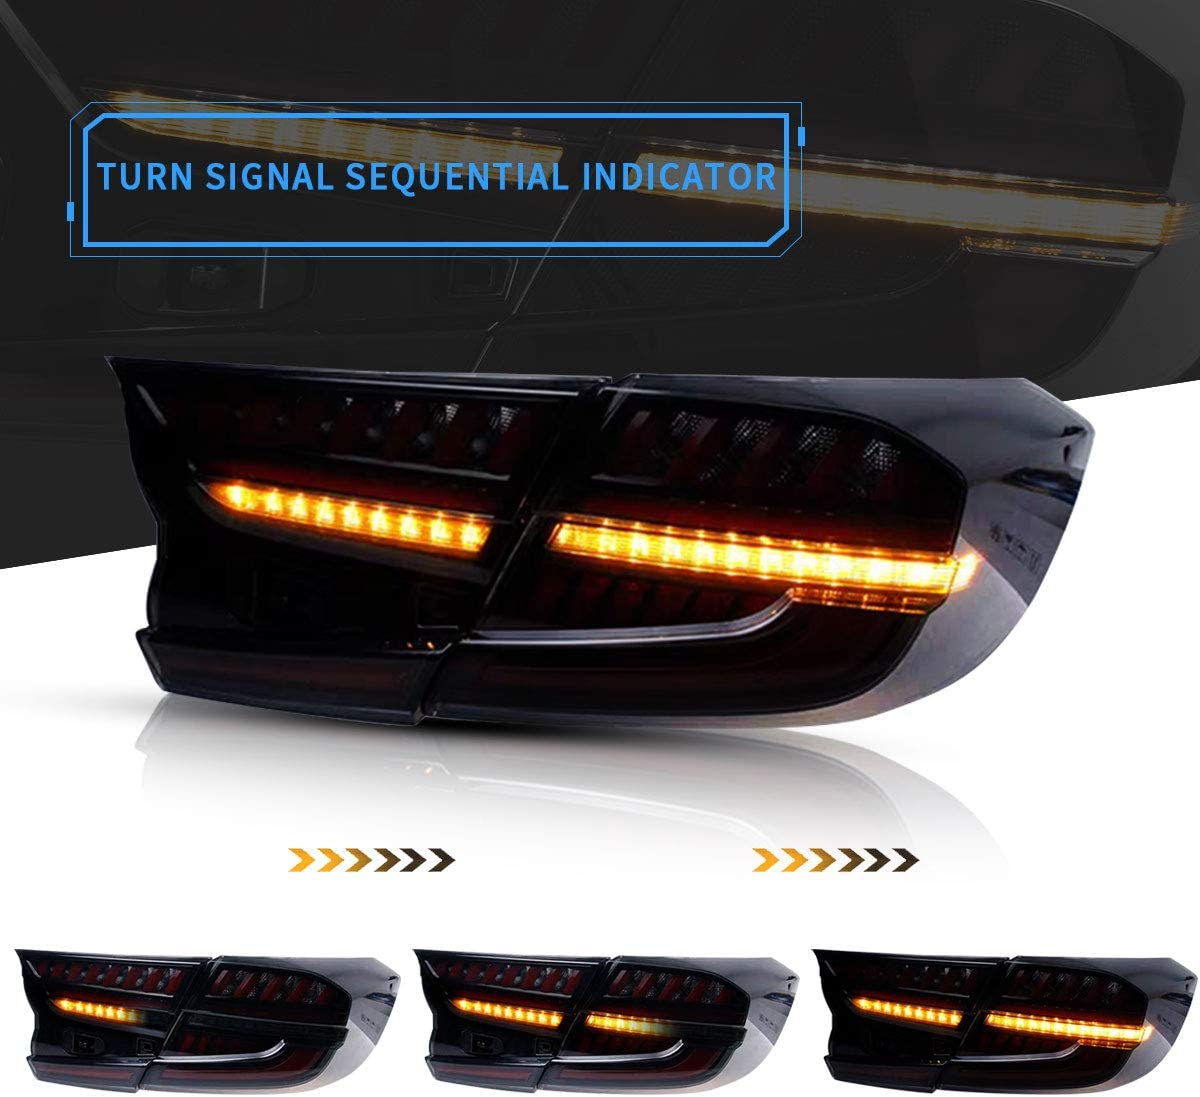 VLAND LED Tail Lights for 2018 2019 X Gen Honda Accord with Amber Sequentiall Turn Signal Smoked//Tinted